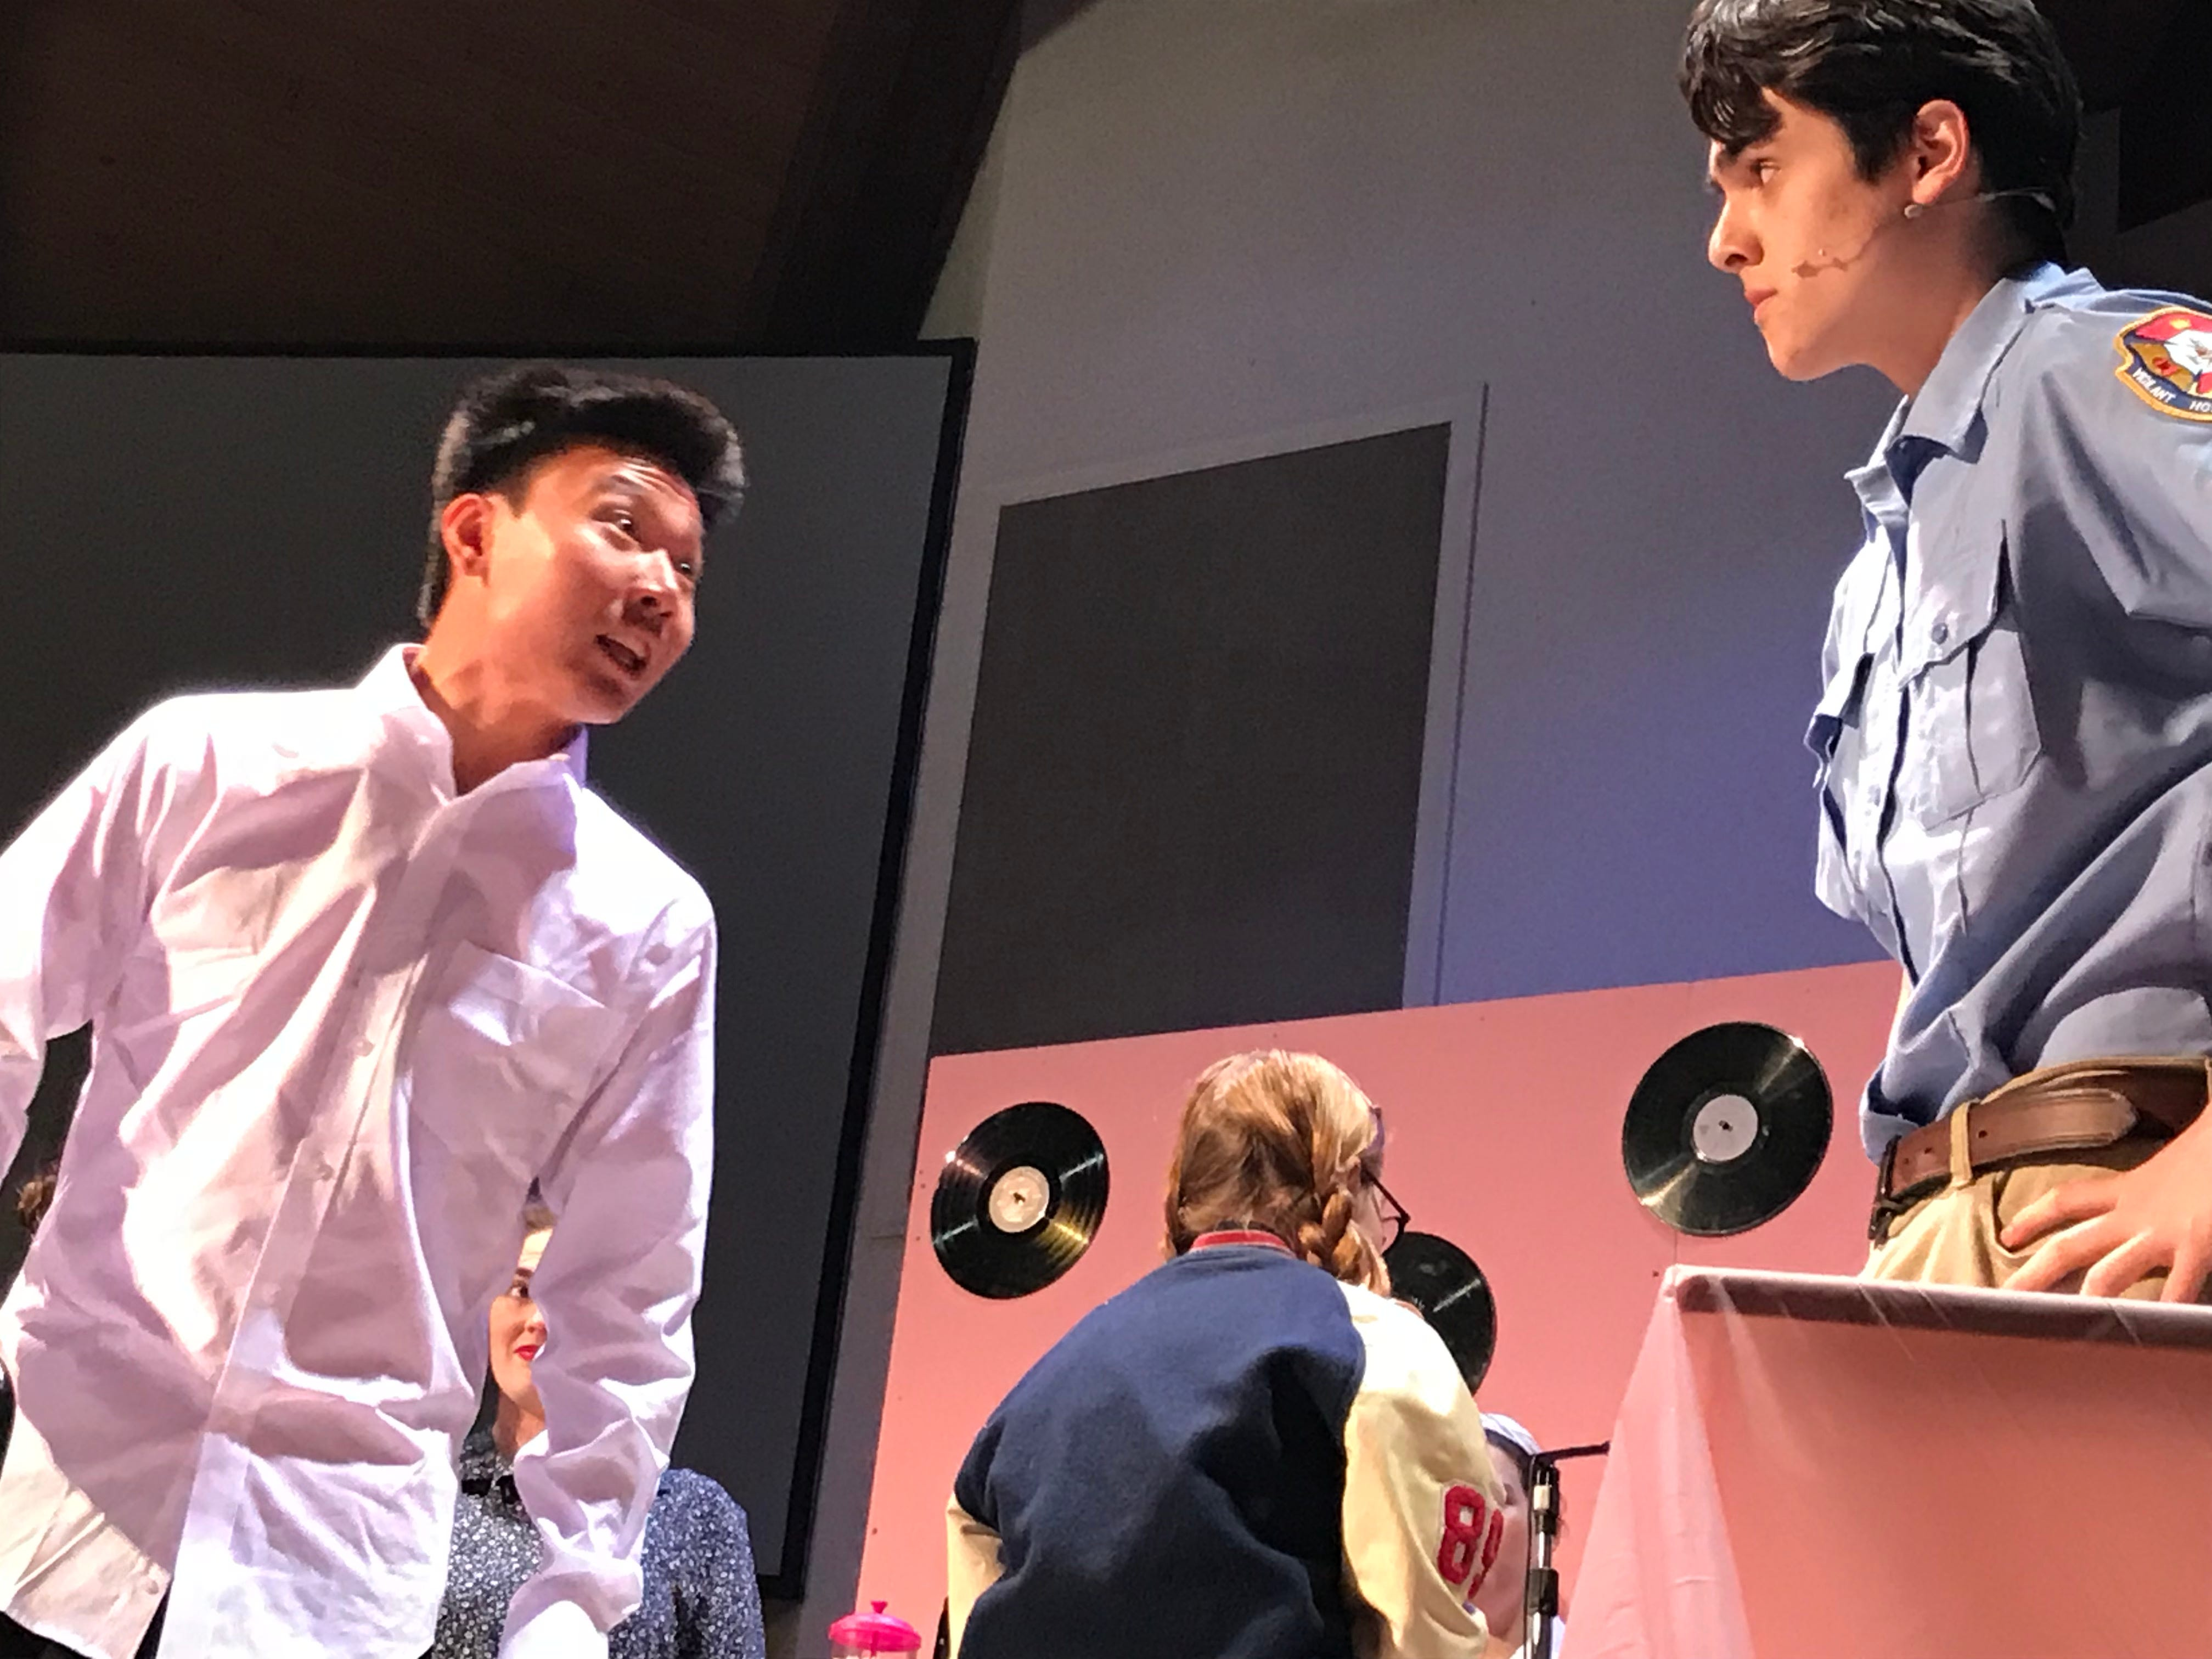 """Cumberland Valley Christian School sophomore David Jeong, playing the curmudgeon high school principal, and Gianni Castellano, playing the town sheriff, argue in a scene of """"Murder at the Malt Shop,"""" during a dress rehearsal on Friday afternoon. The public is invited to see the play at 7 p.m. tonight at the Open Door Church, which is located in the Cumberland Valley Christian School complex, at 600 Miller St., Chambersburg."""